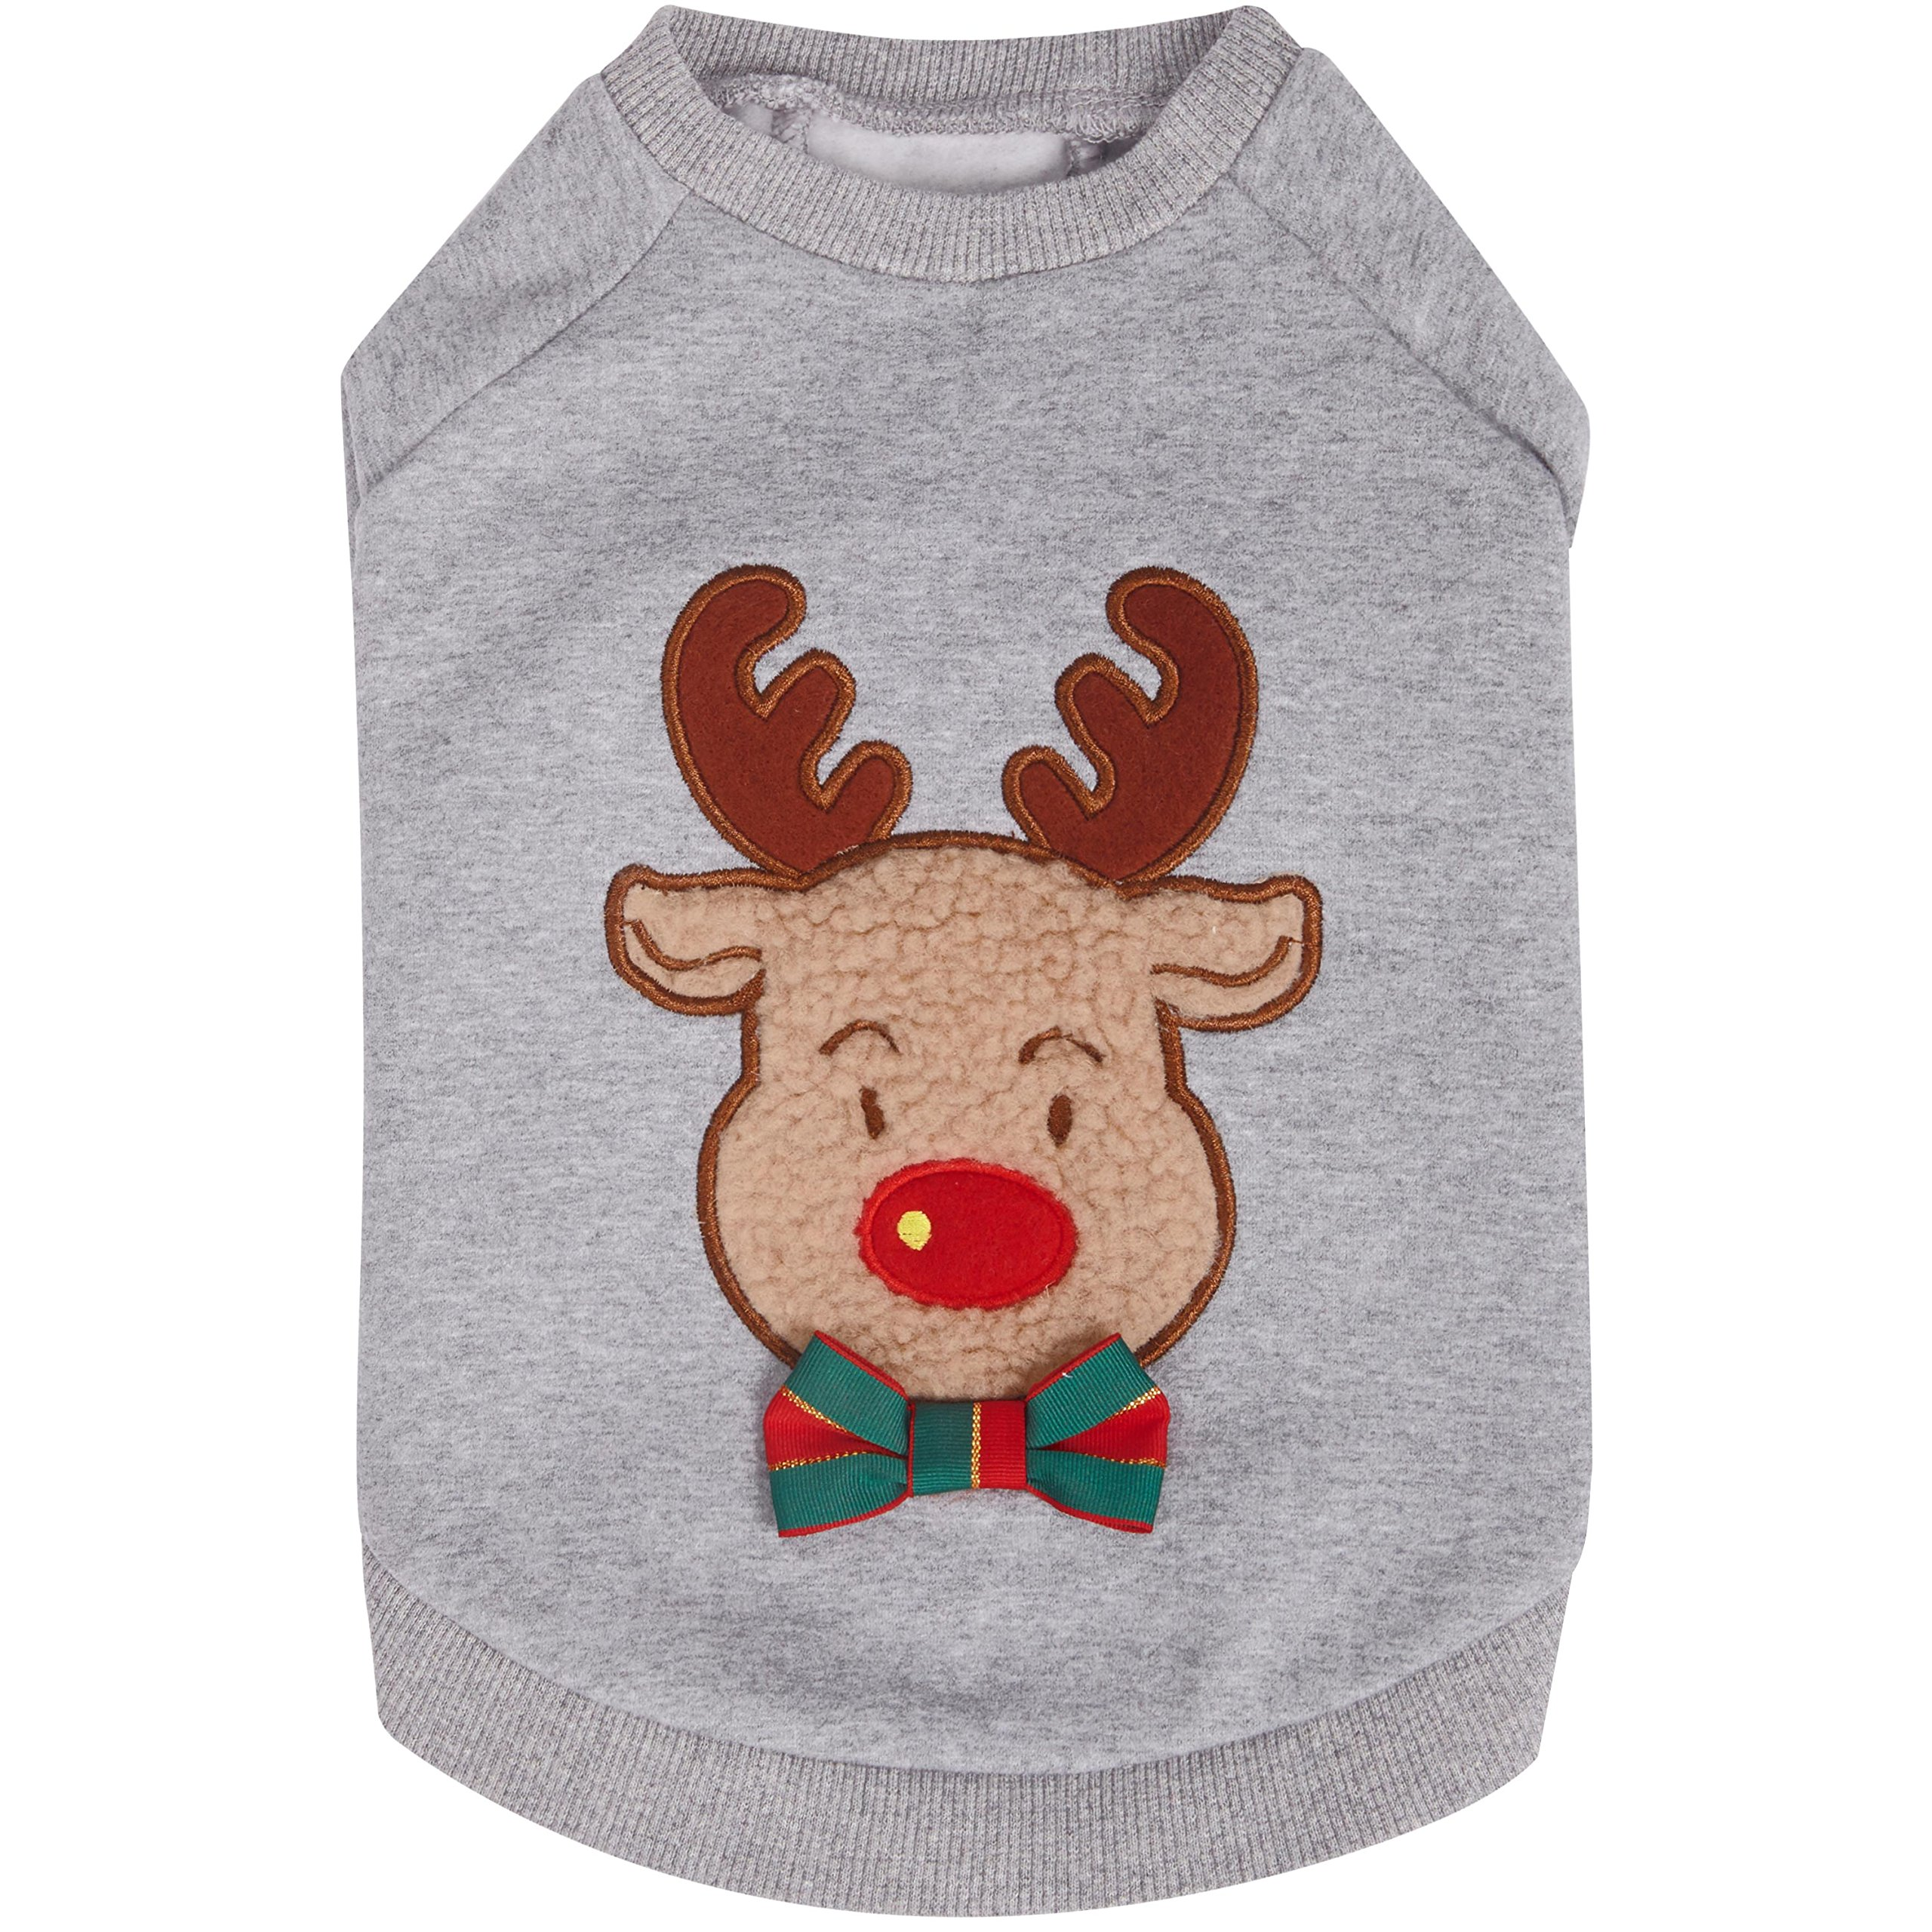 Blueberry Pet Soft & Comfy Ultimate All-weather Christmas Reindeer French Terry Dog Sweatshirt, Back Length 16'', Pack of 1 Clothes for Dogs